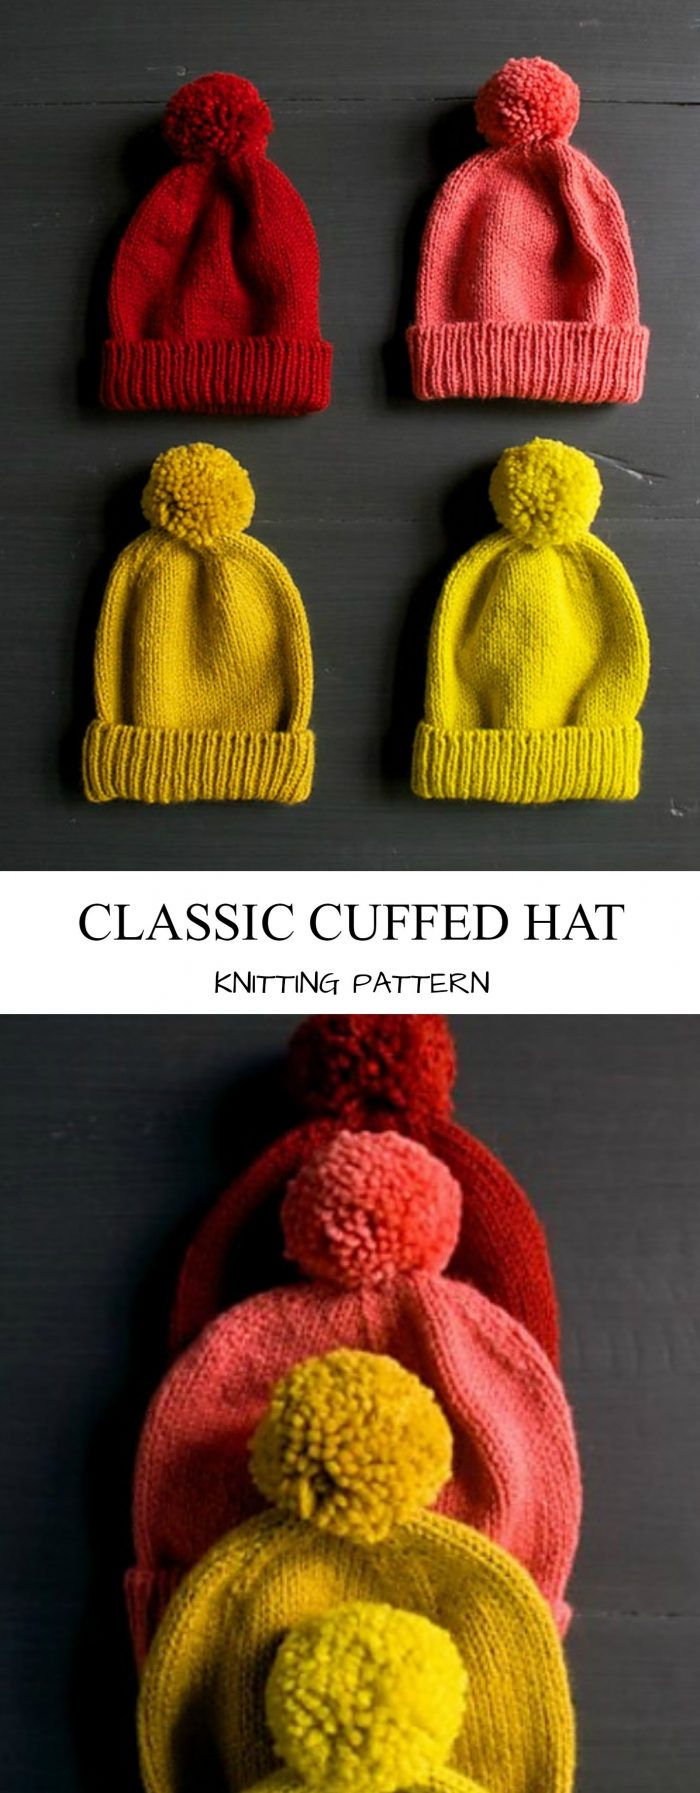 b2b18052374 This is a free pattern by Purl Soho on how to knit these warm and cozy